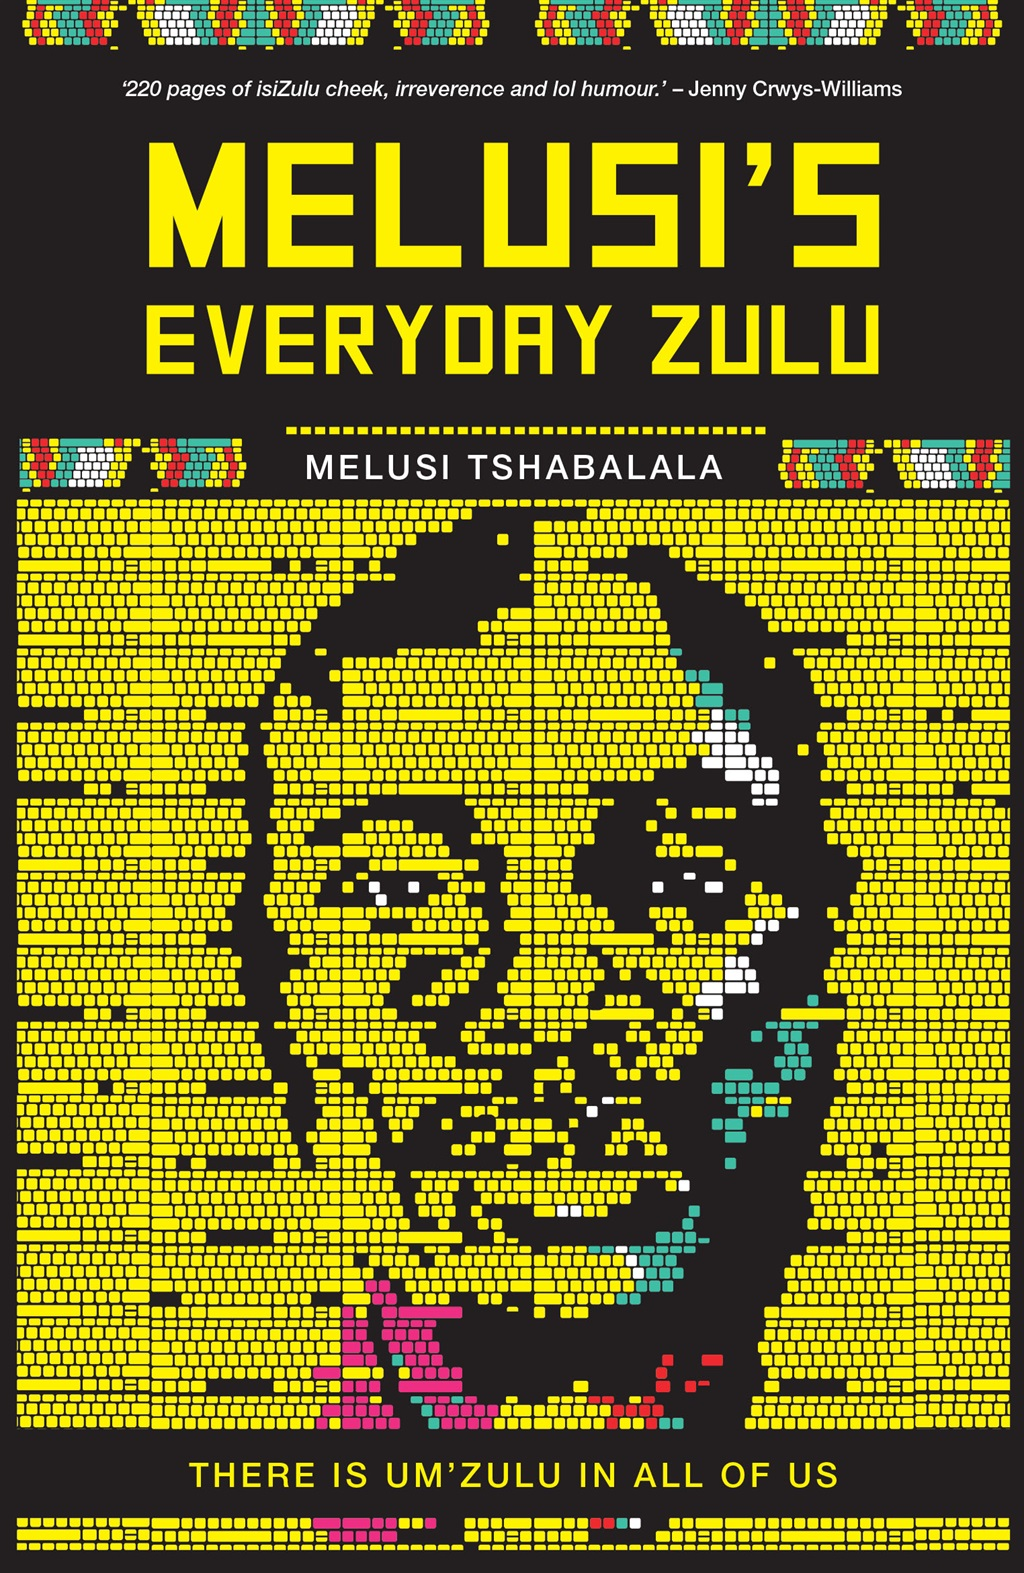 Melusi's Everyday Zulu: There's um'Zulu in all of us is written by Melusi Tshabalala and published by Jonathan Ball Publishers.